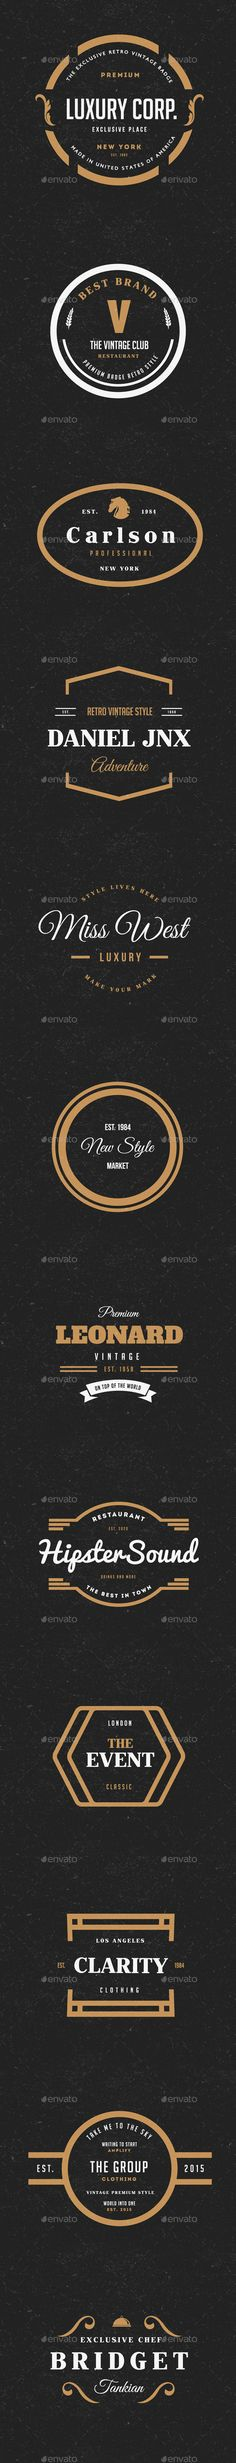 12 Vintage Logos Labels & Badges | Download: http://graphicriver.net/item/12-vintage-logos-labels-badges/9991408?ref=ksioks